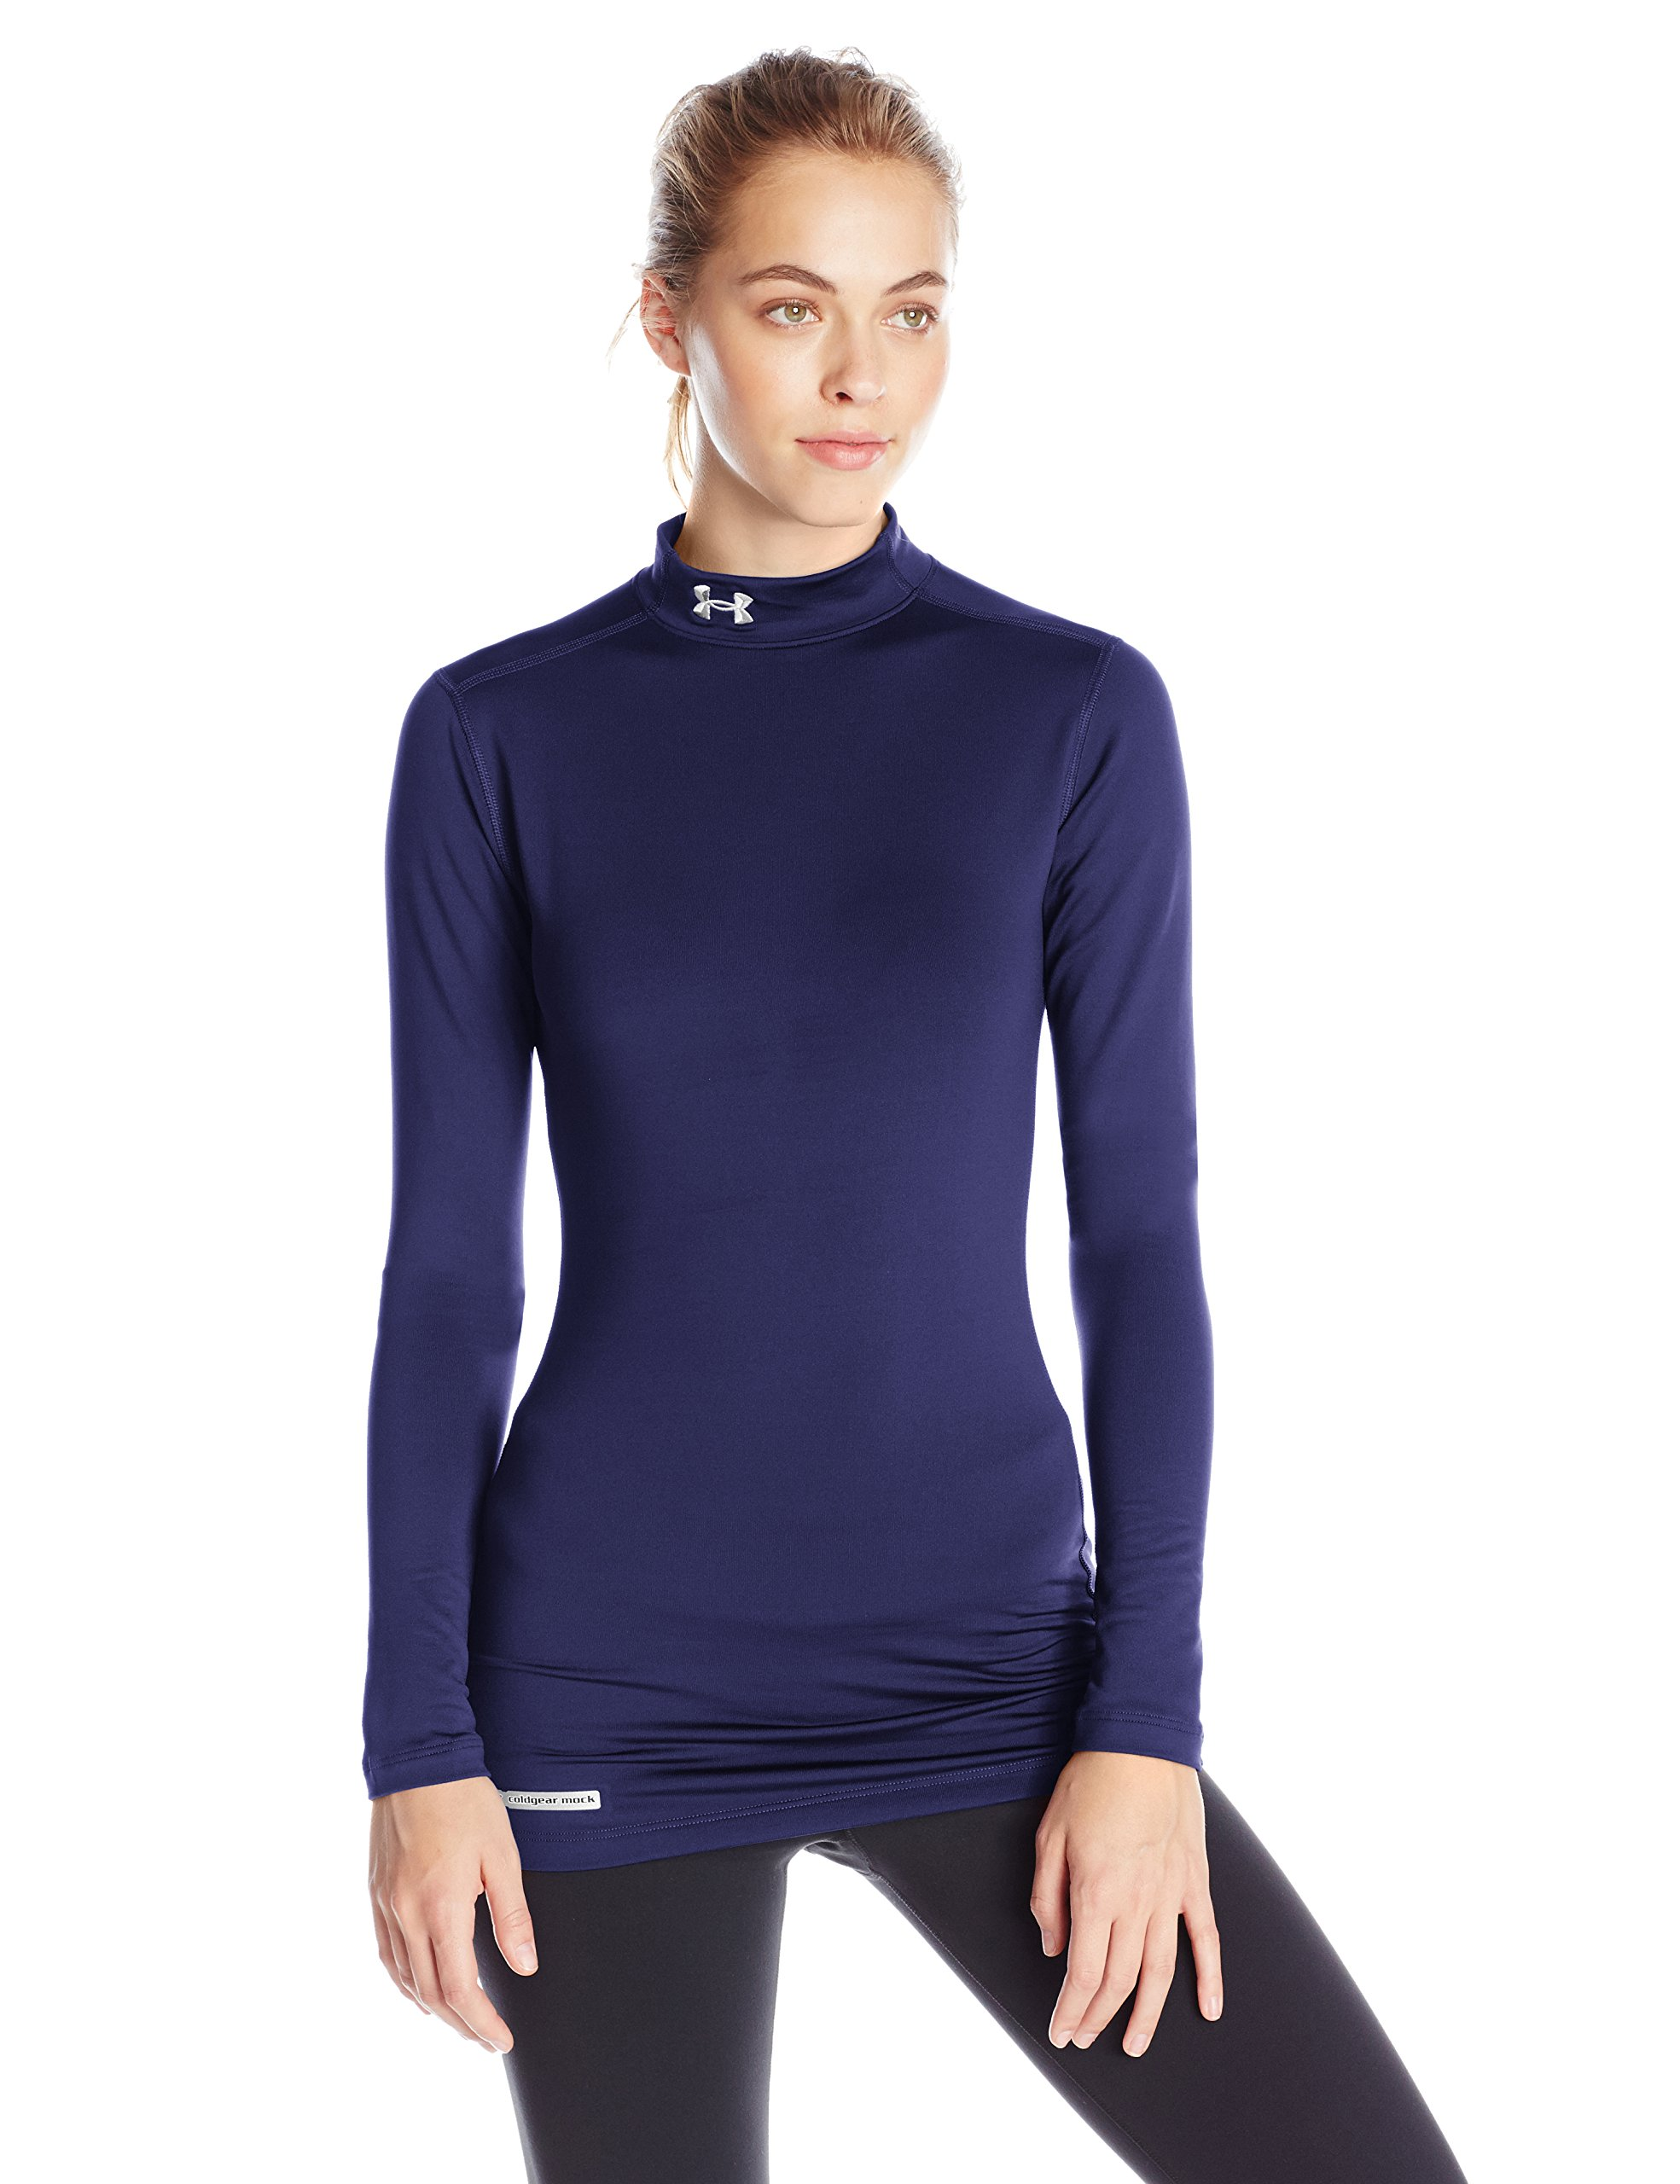 Under Armour Women's ColdGear Authentic Mock, Midnight Navy (410)/Metal, X-Large by Under Armour